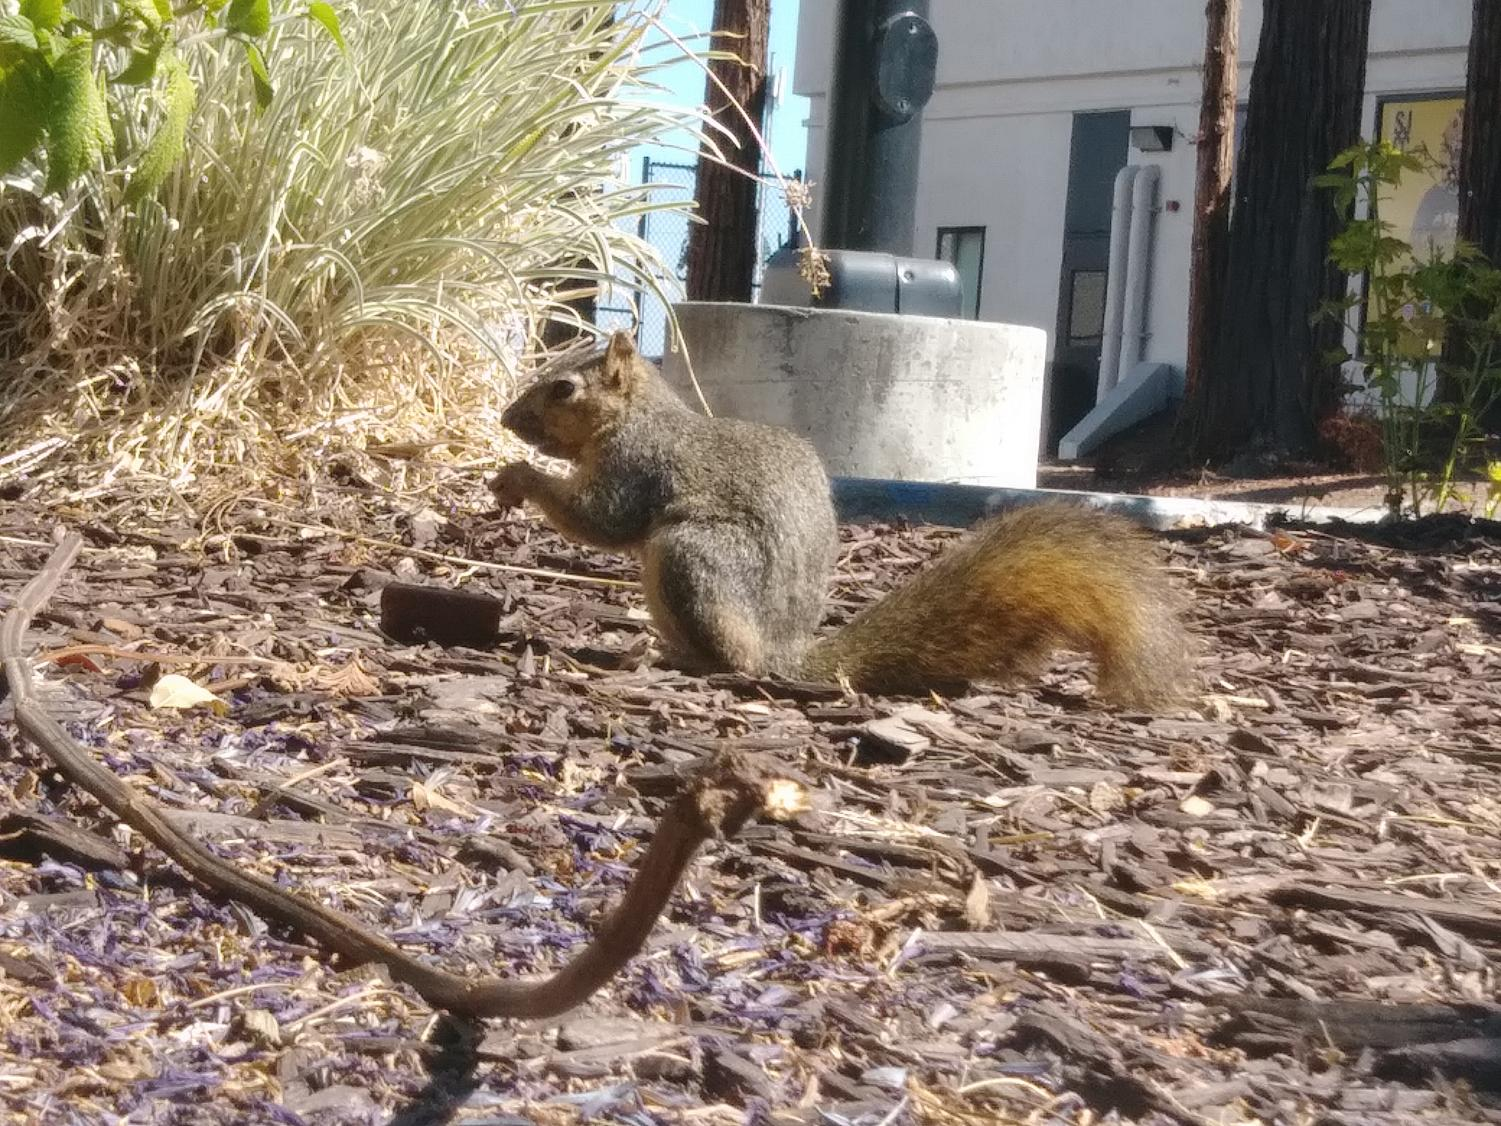 Squirrel eating a muffin after digging it out of a garbage can on Sep 25th.